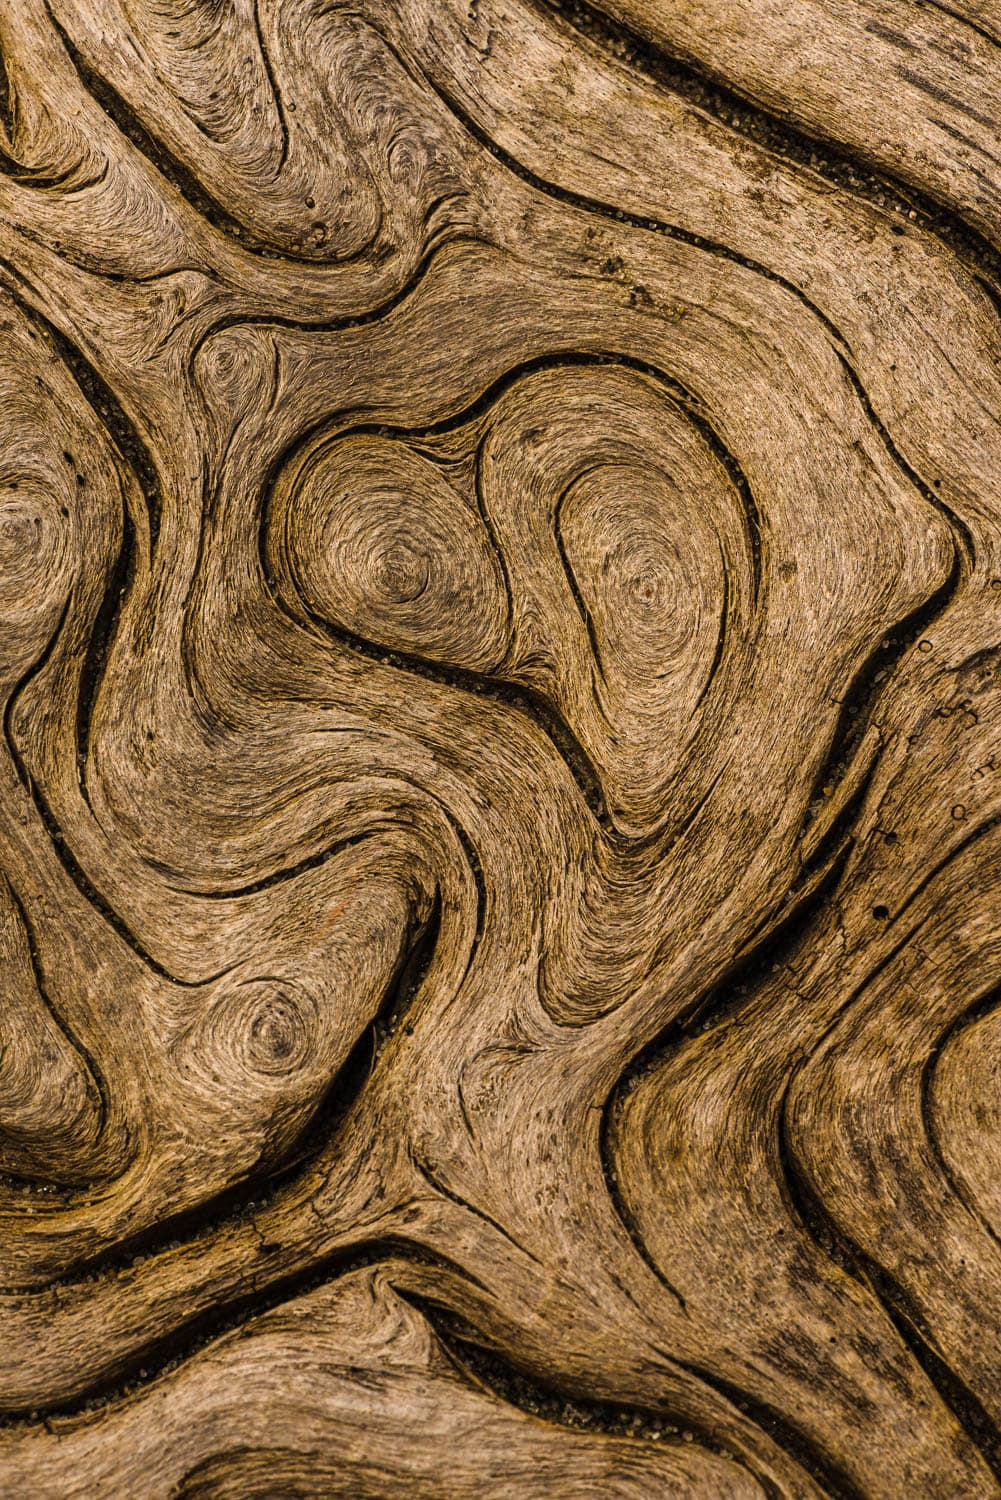 Driftwood patterns swirl in the form of a heart